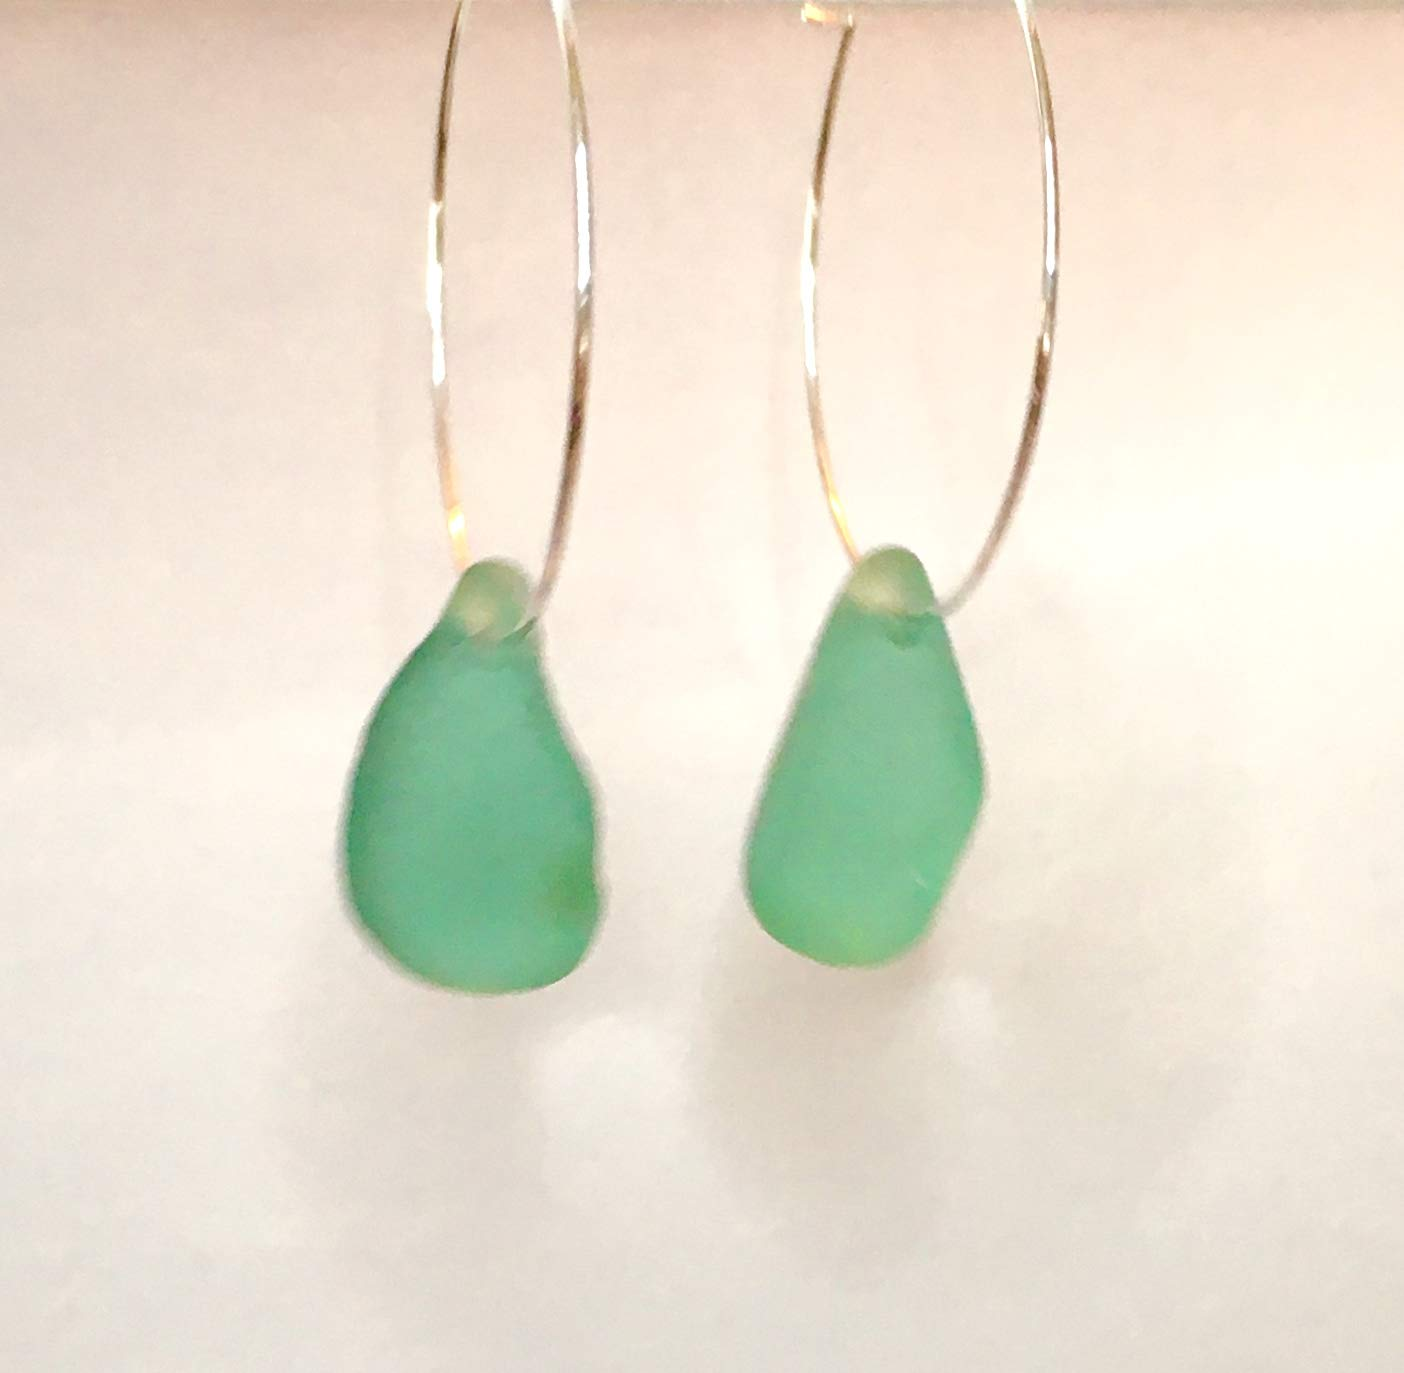 e25654a601e86 Real Genuine Authentic Beach Glass Untouched Aqua Sea Glass Hoop Silver  Earrings One of A Kind Handmade Piece